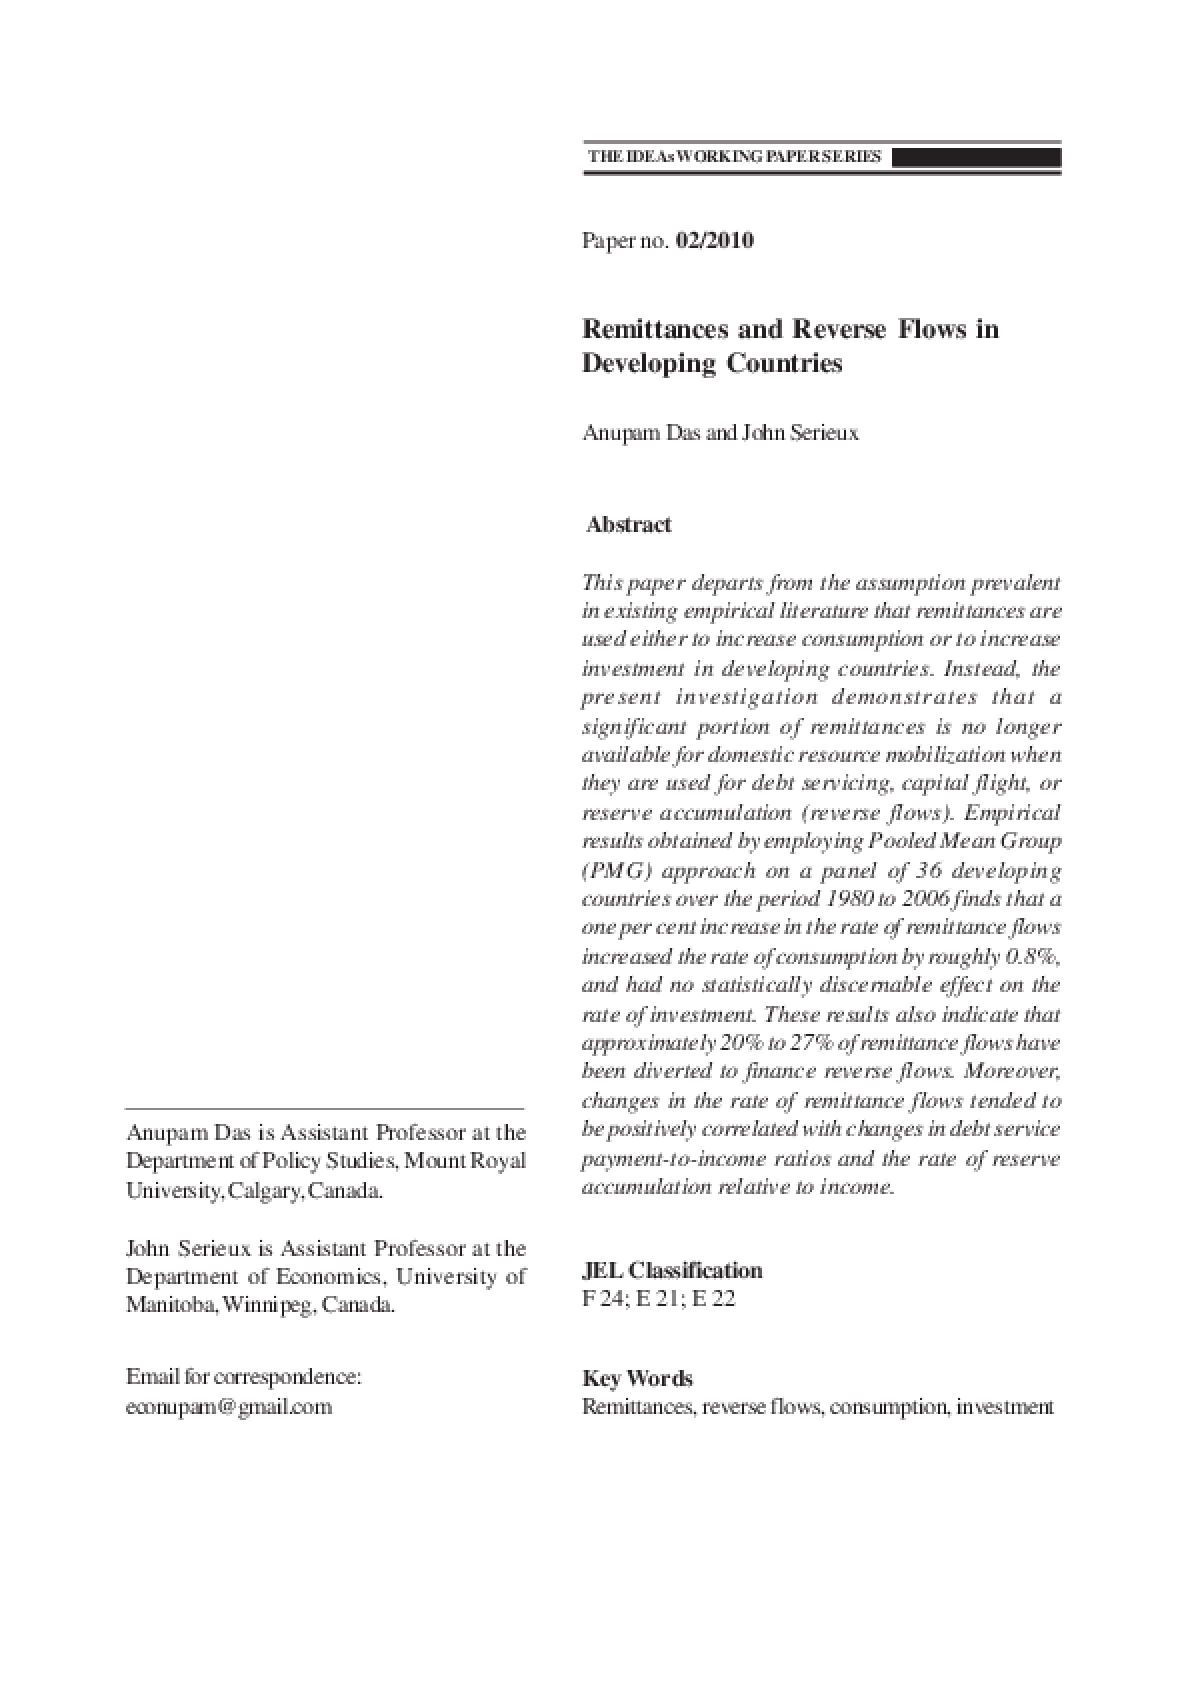 Remittances and Reverse Flows in Developing Countries